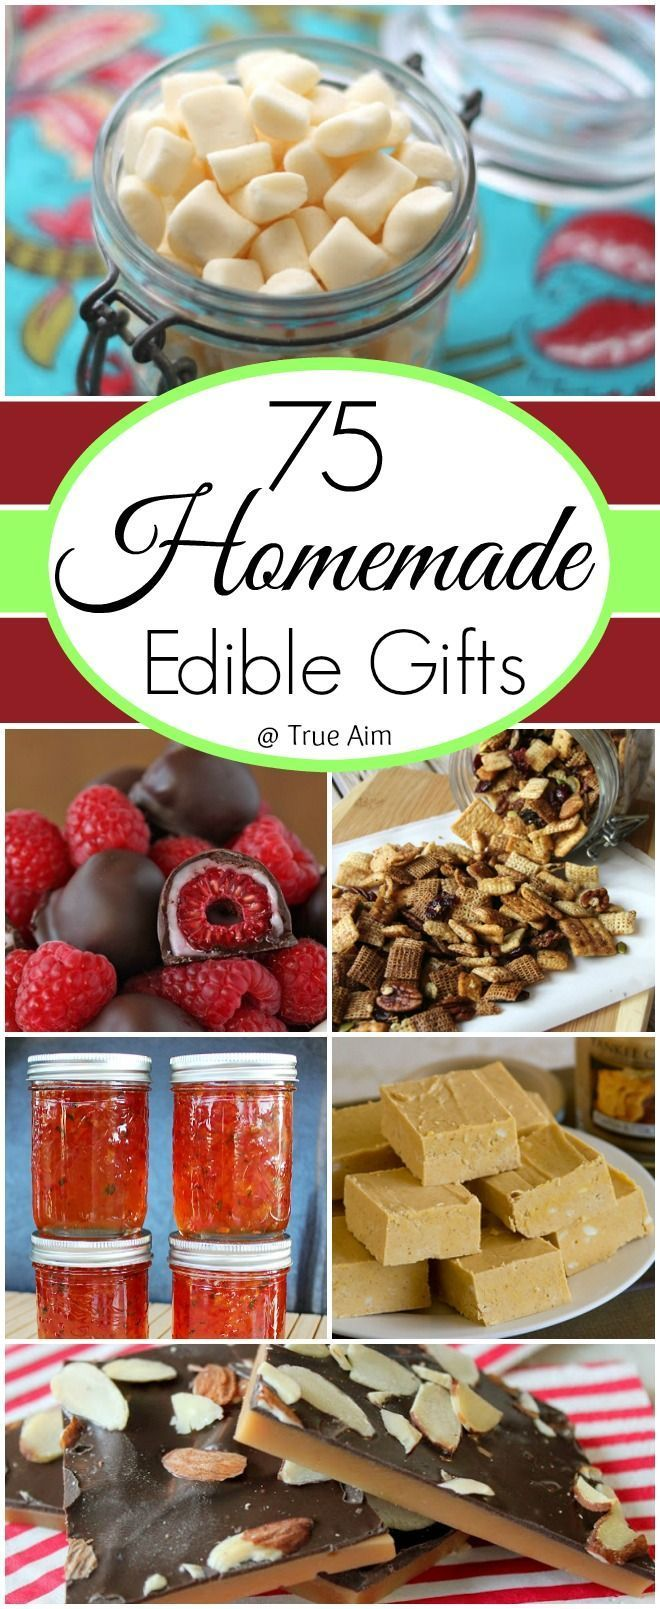 75 Homemade Edible Gift Ideas | Homemade truffles, Bark recipe and ...